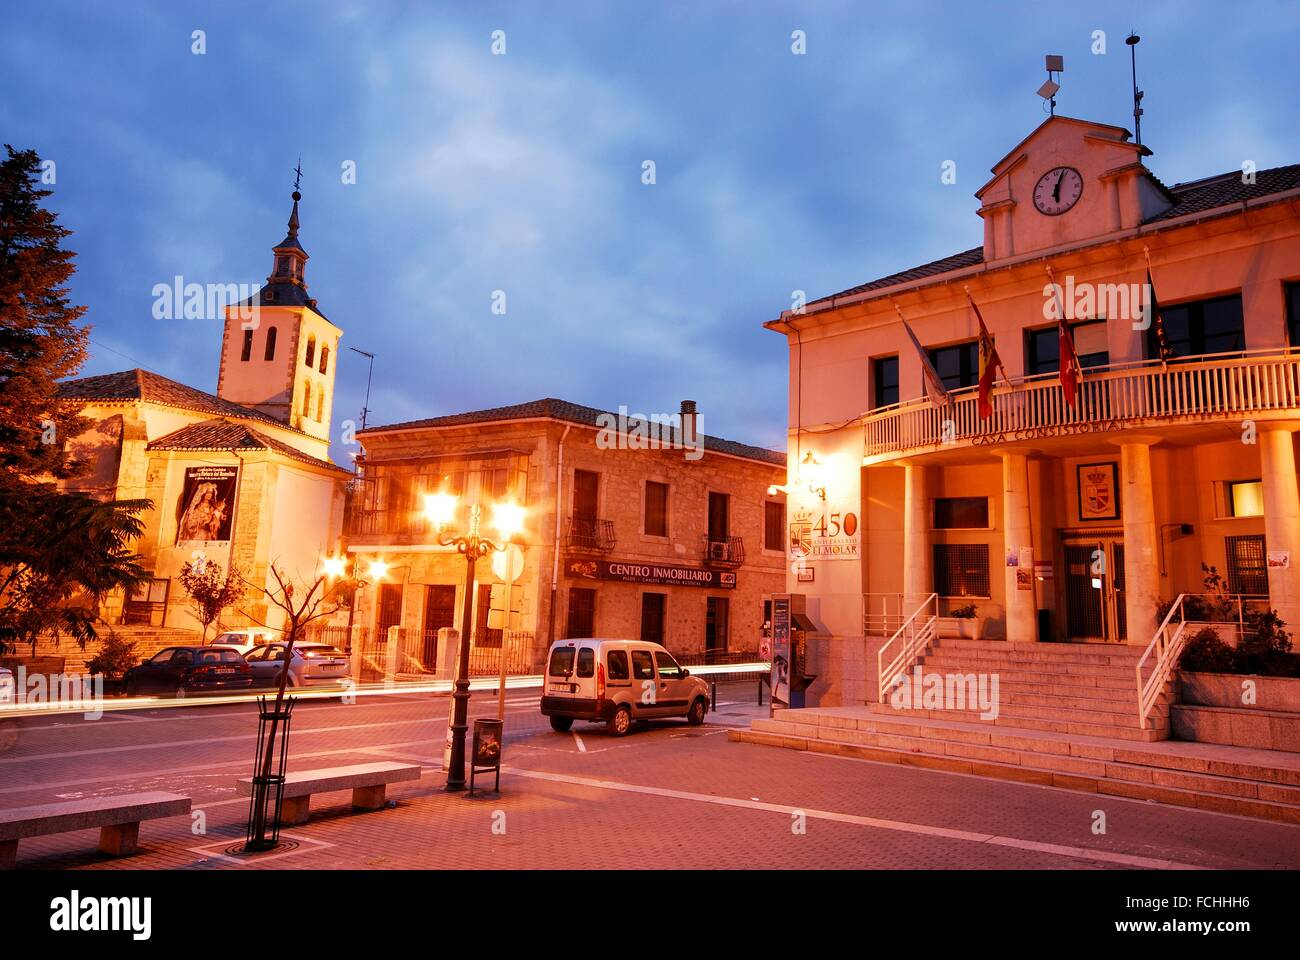 Town hall square of El Molar, Madrid, Spain. - Stock Image